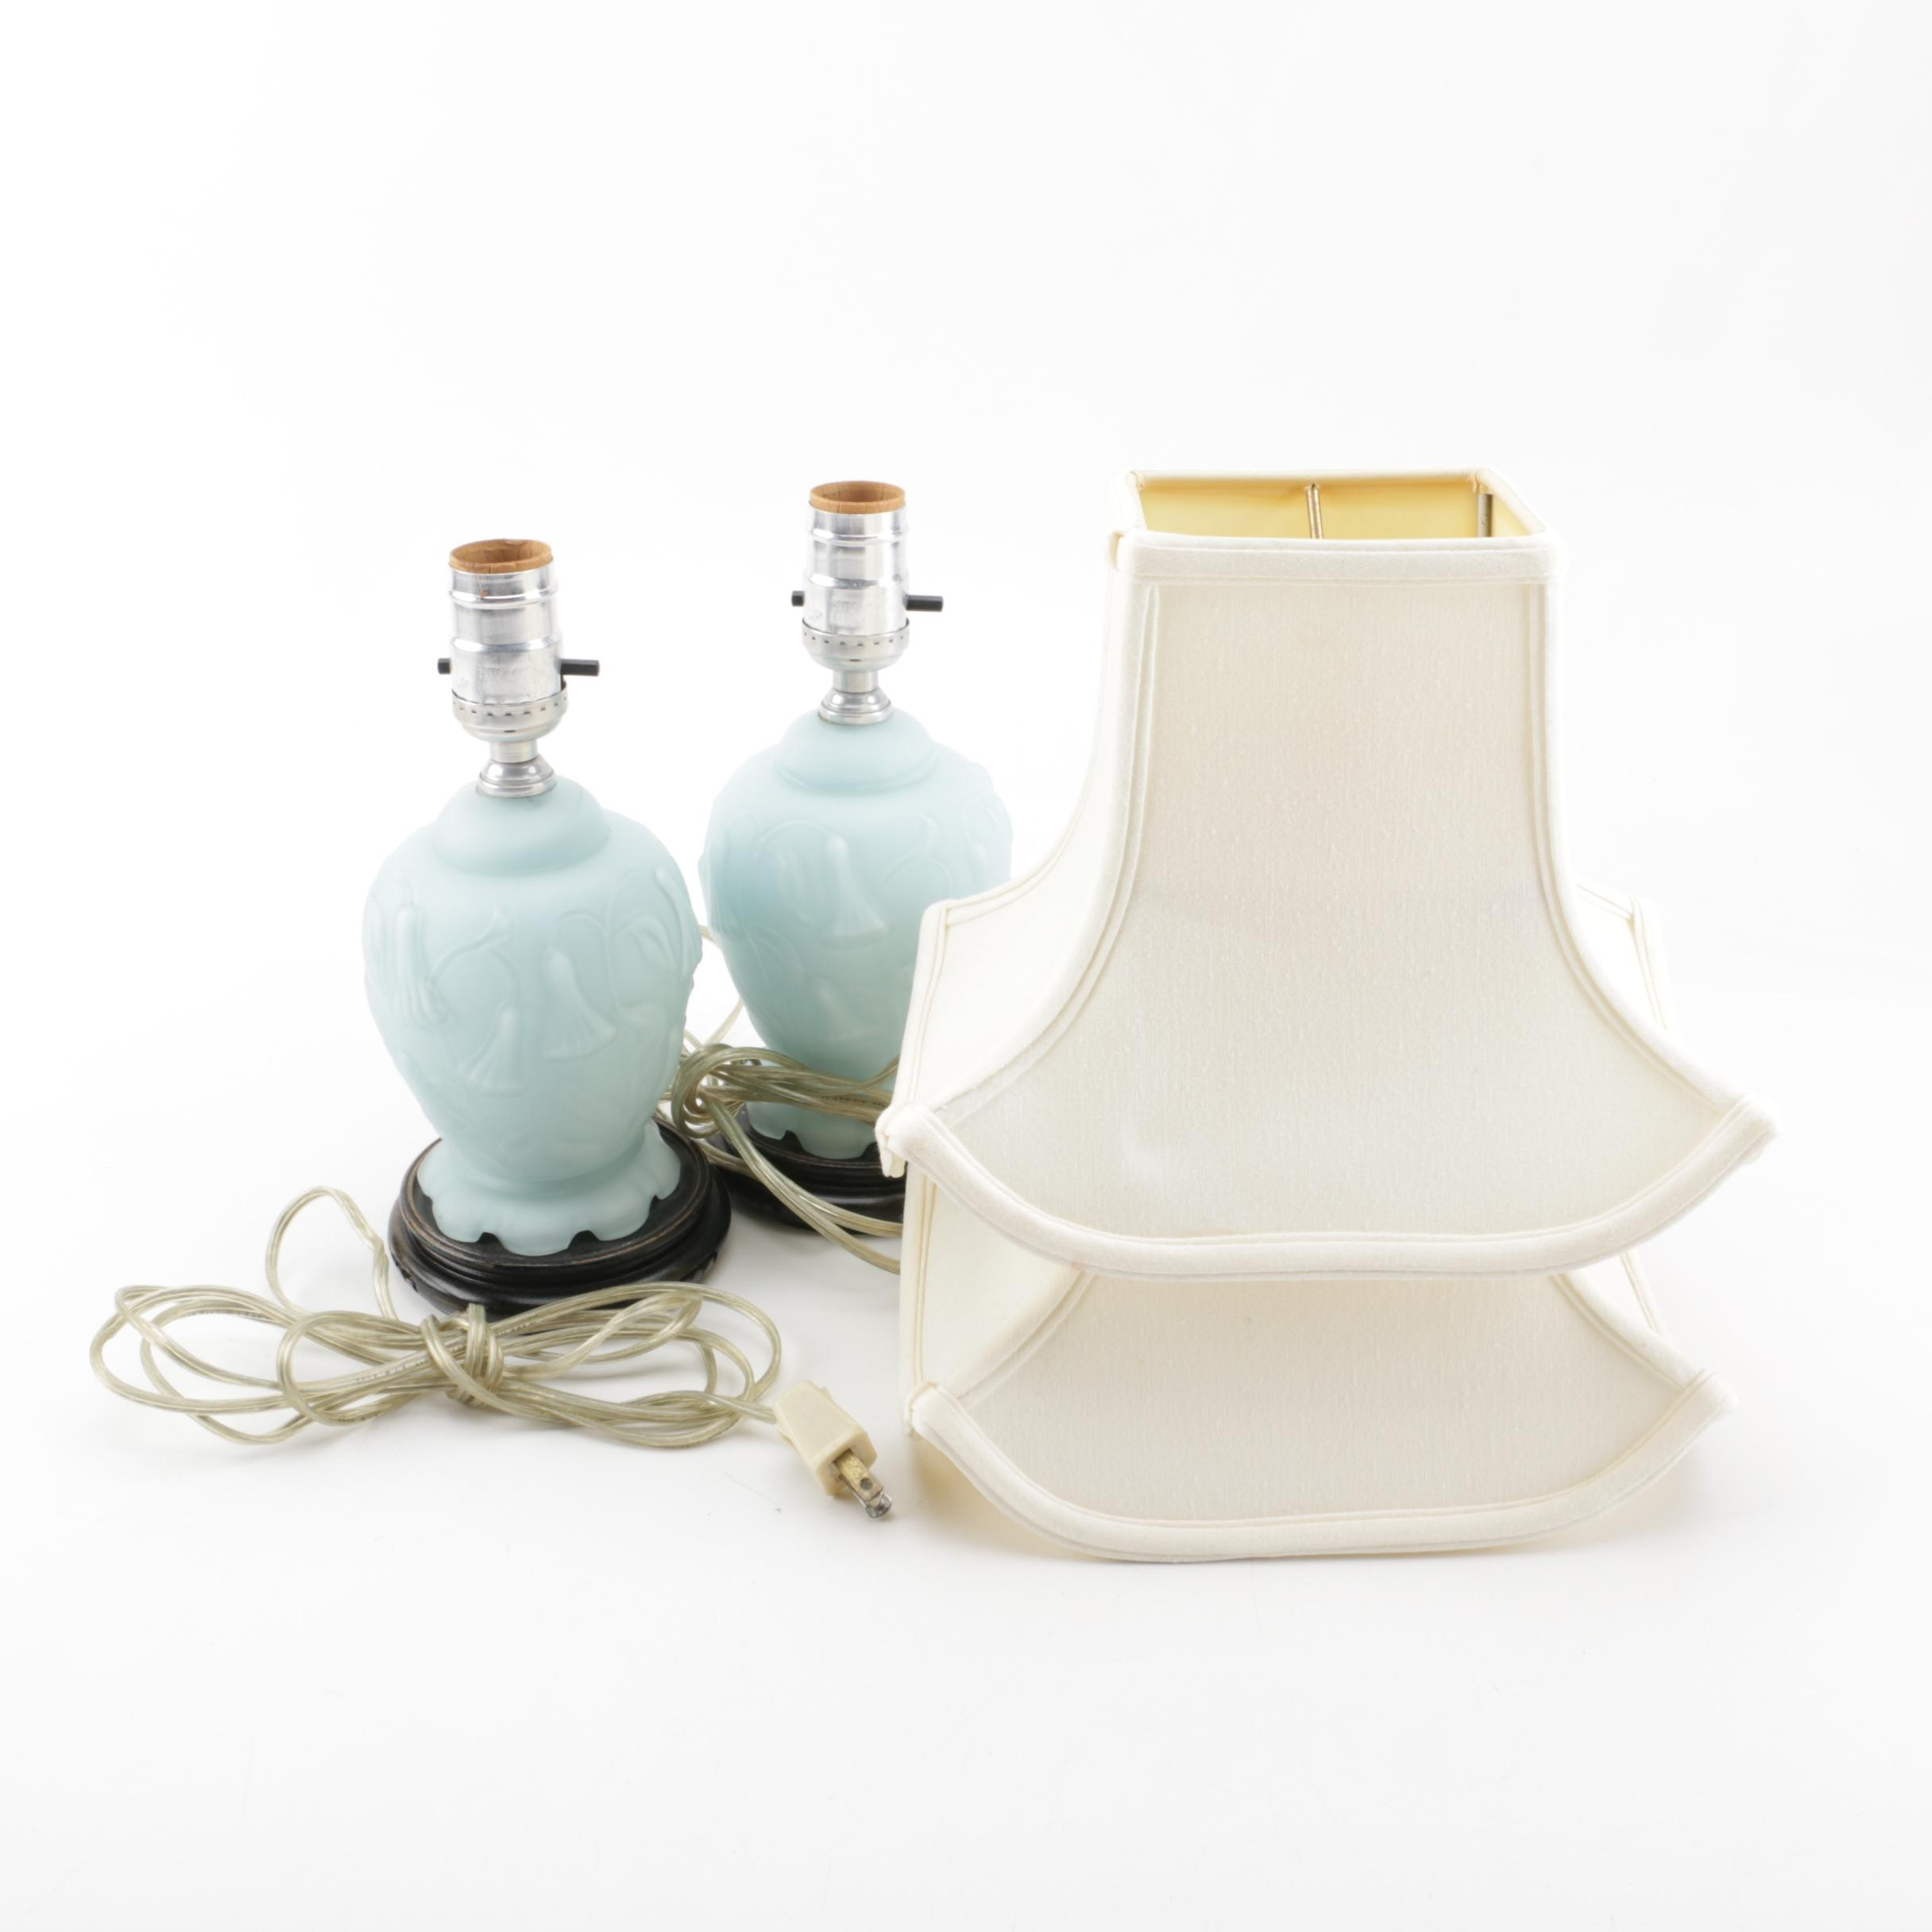 Pair of Vintage Blue Opaque Glass Table Lamps